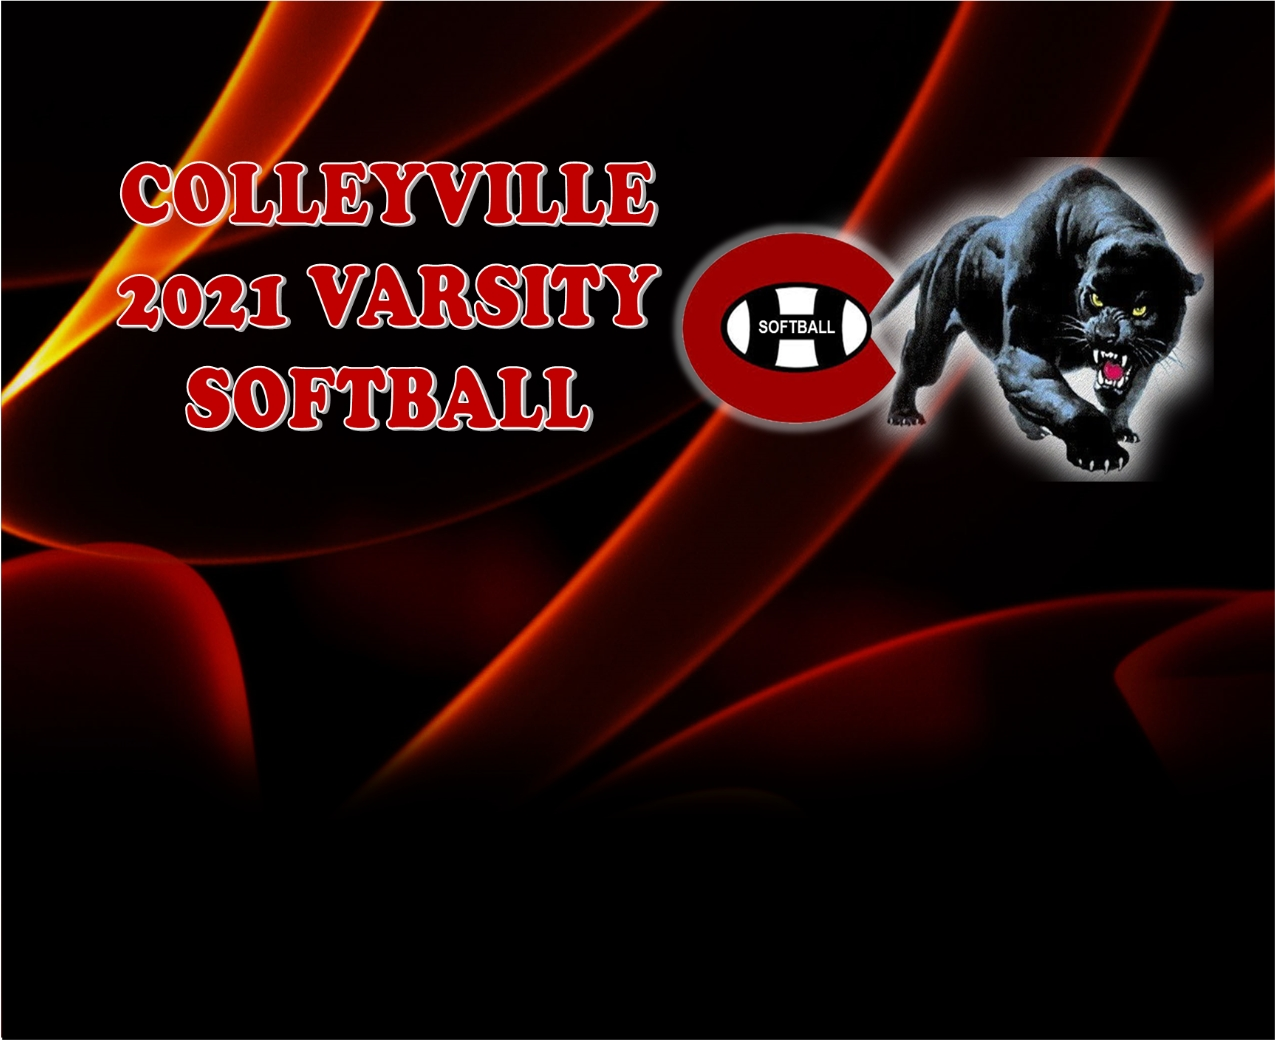 GCISD Softball: Colleyville Lady Panthers Lose Game 1 of Regional Quarterfinals Series to Aledo Ladycats 9-3